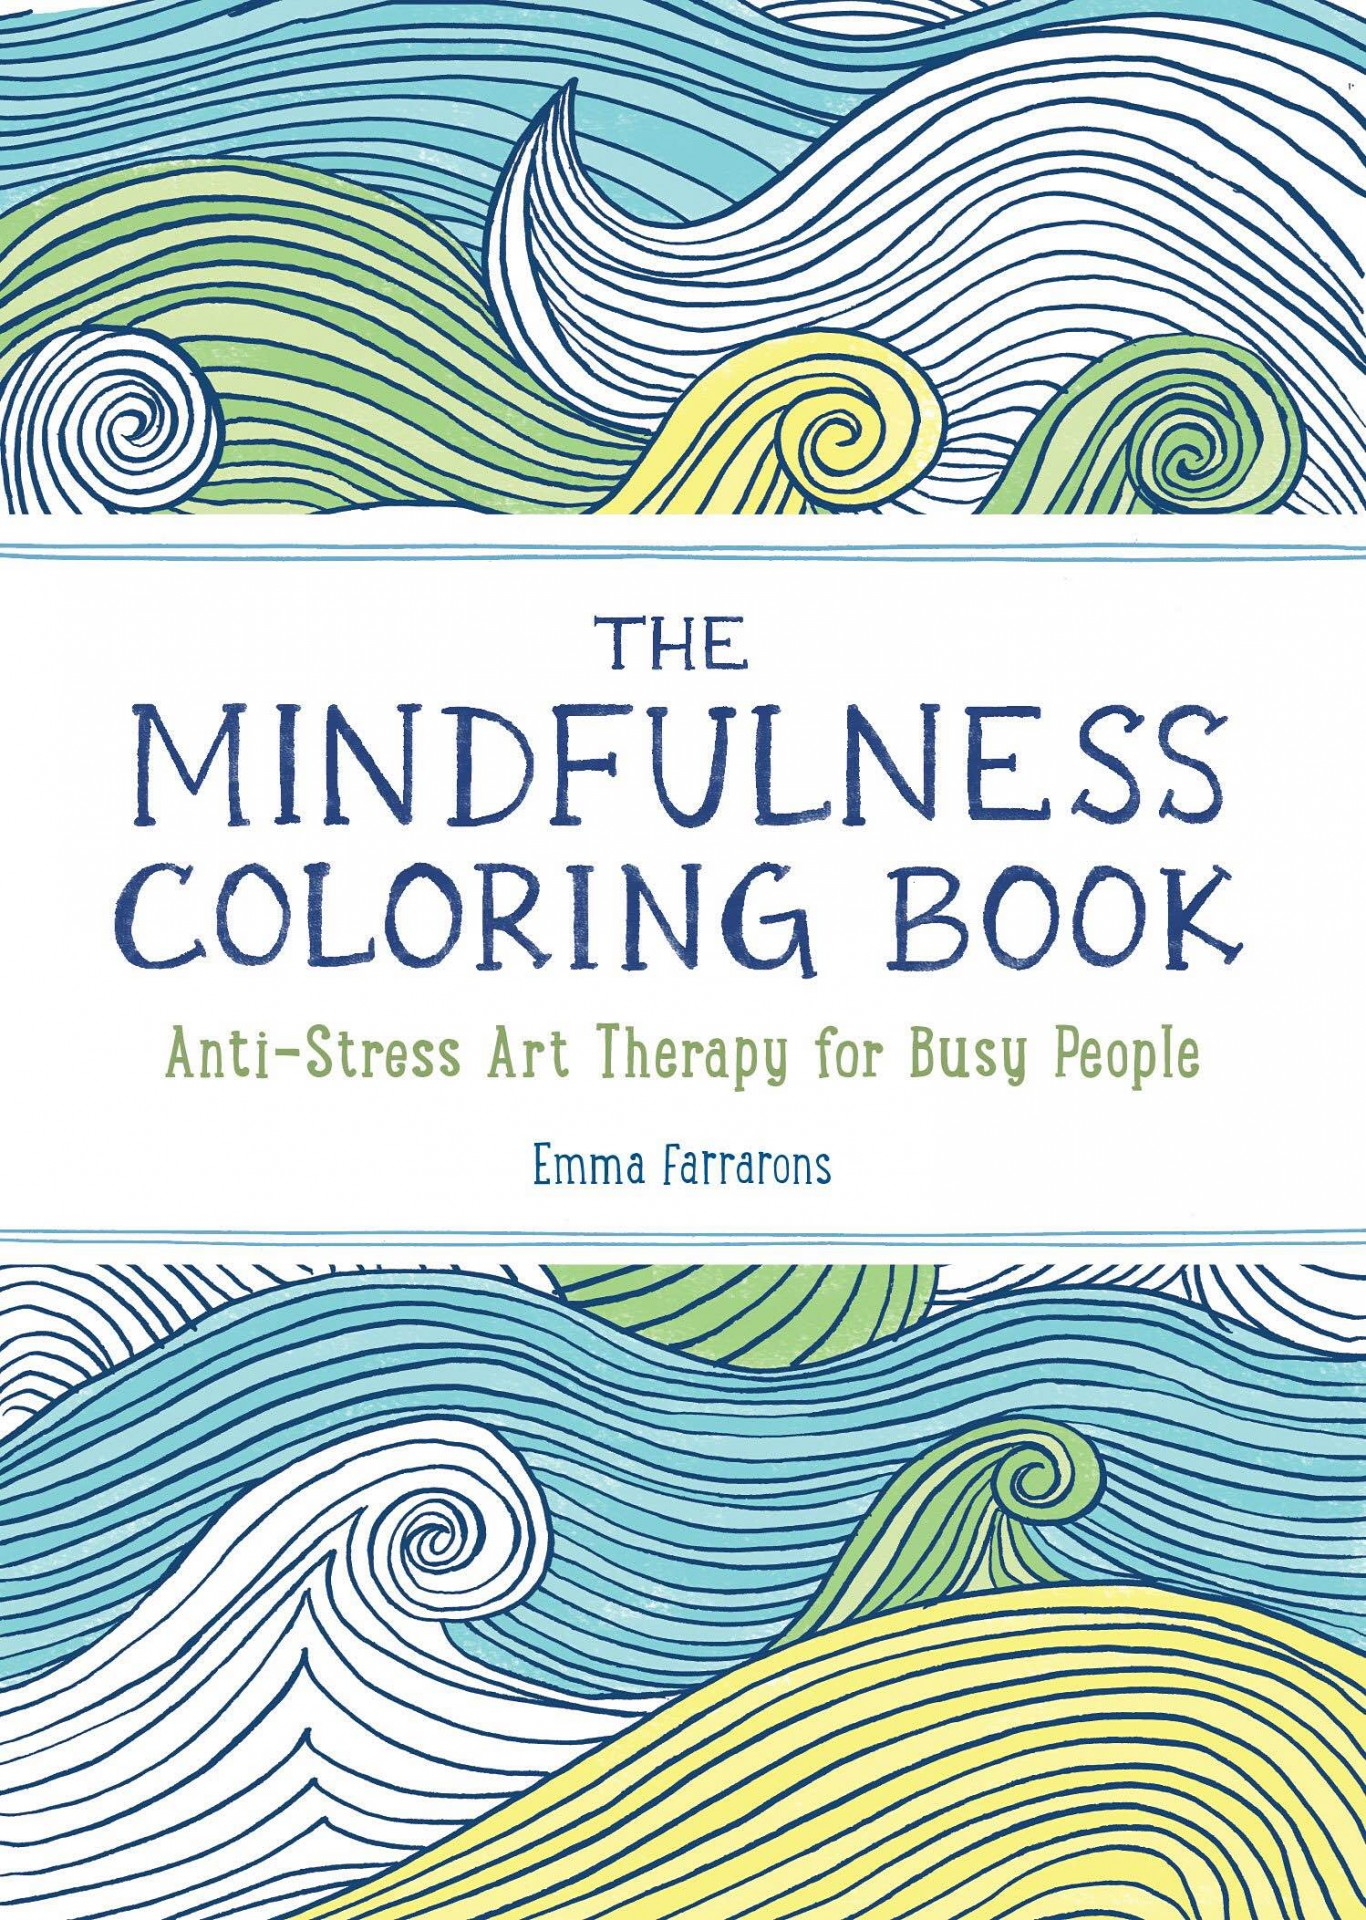 The Mindfulness Coloring Book by Emma Farrarons. ($10)